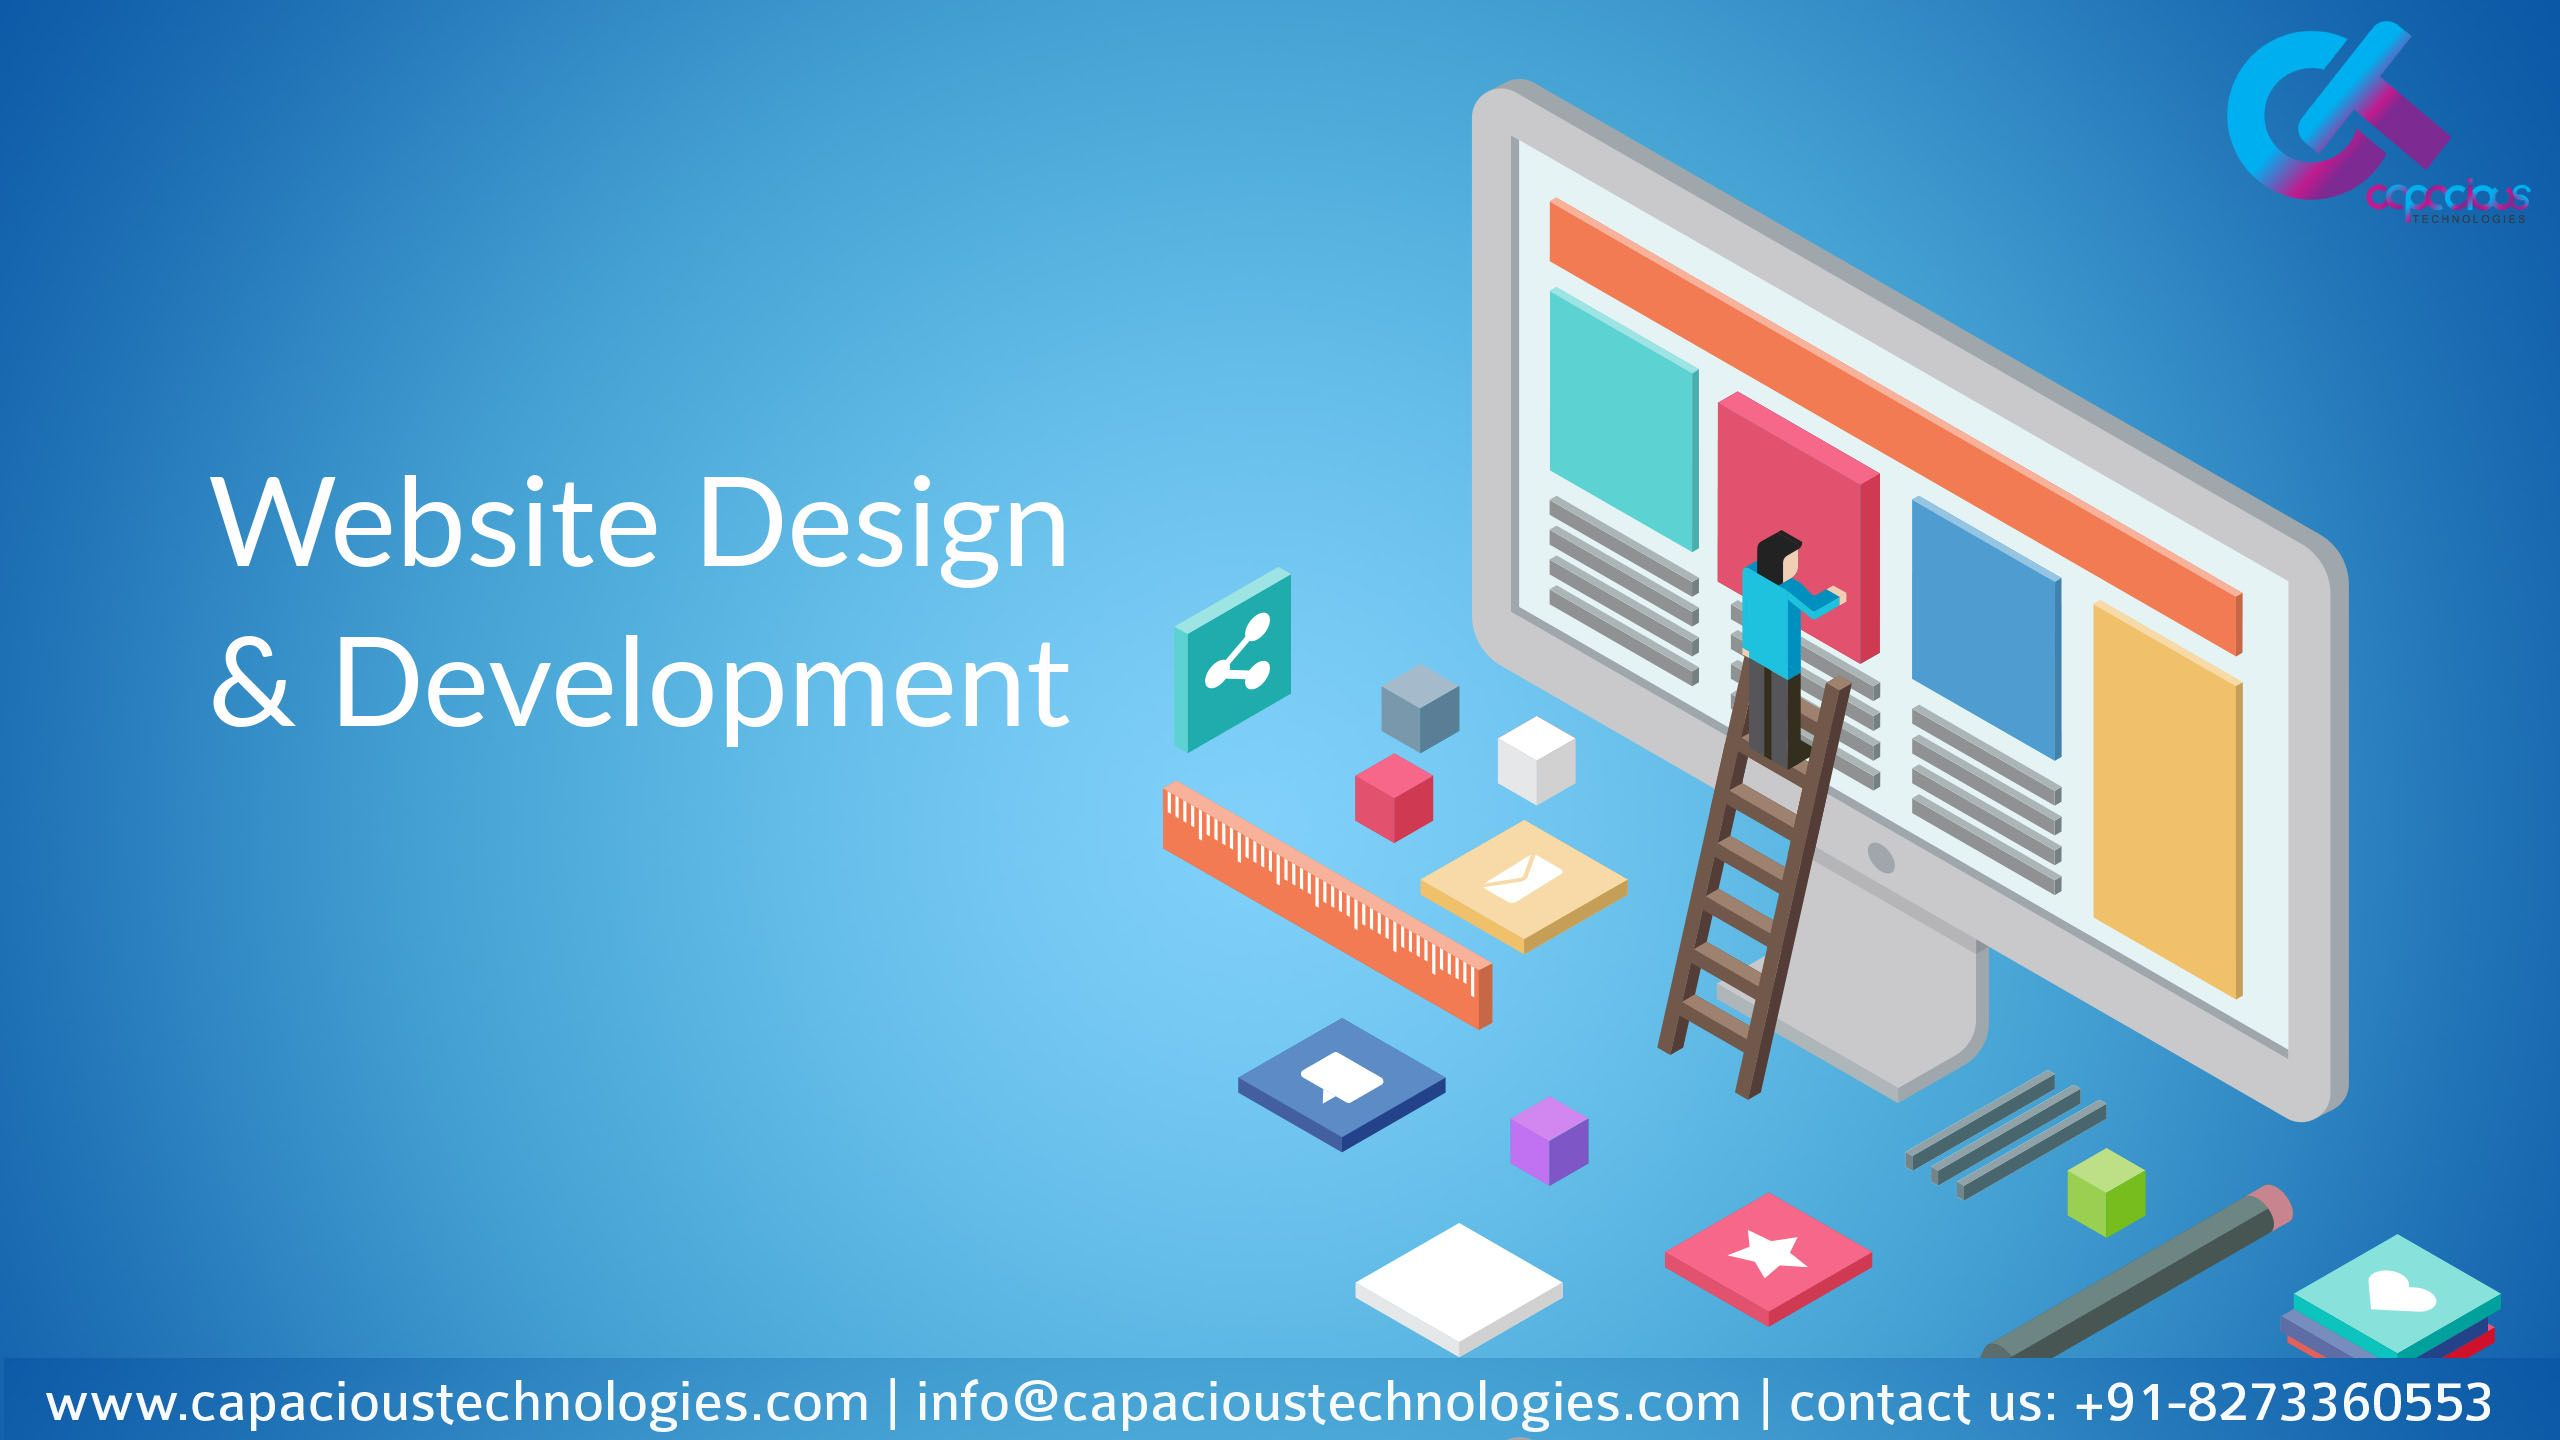 Web Design Is Not Just About Creating Pretty Layouts It S About Understanding The Marketing Challenge Behind Your Business Bes In 2020 With Images Web Development Design